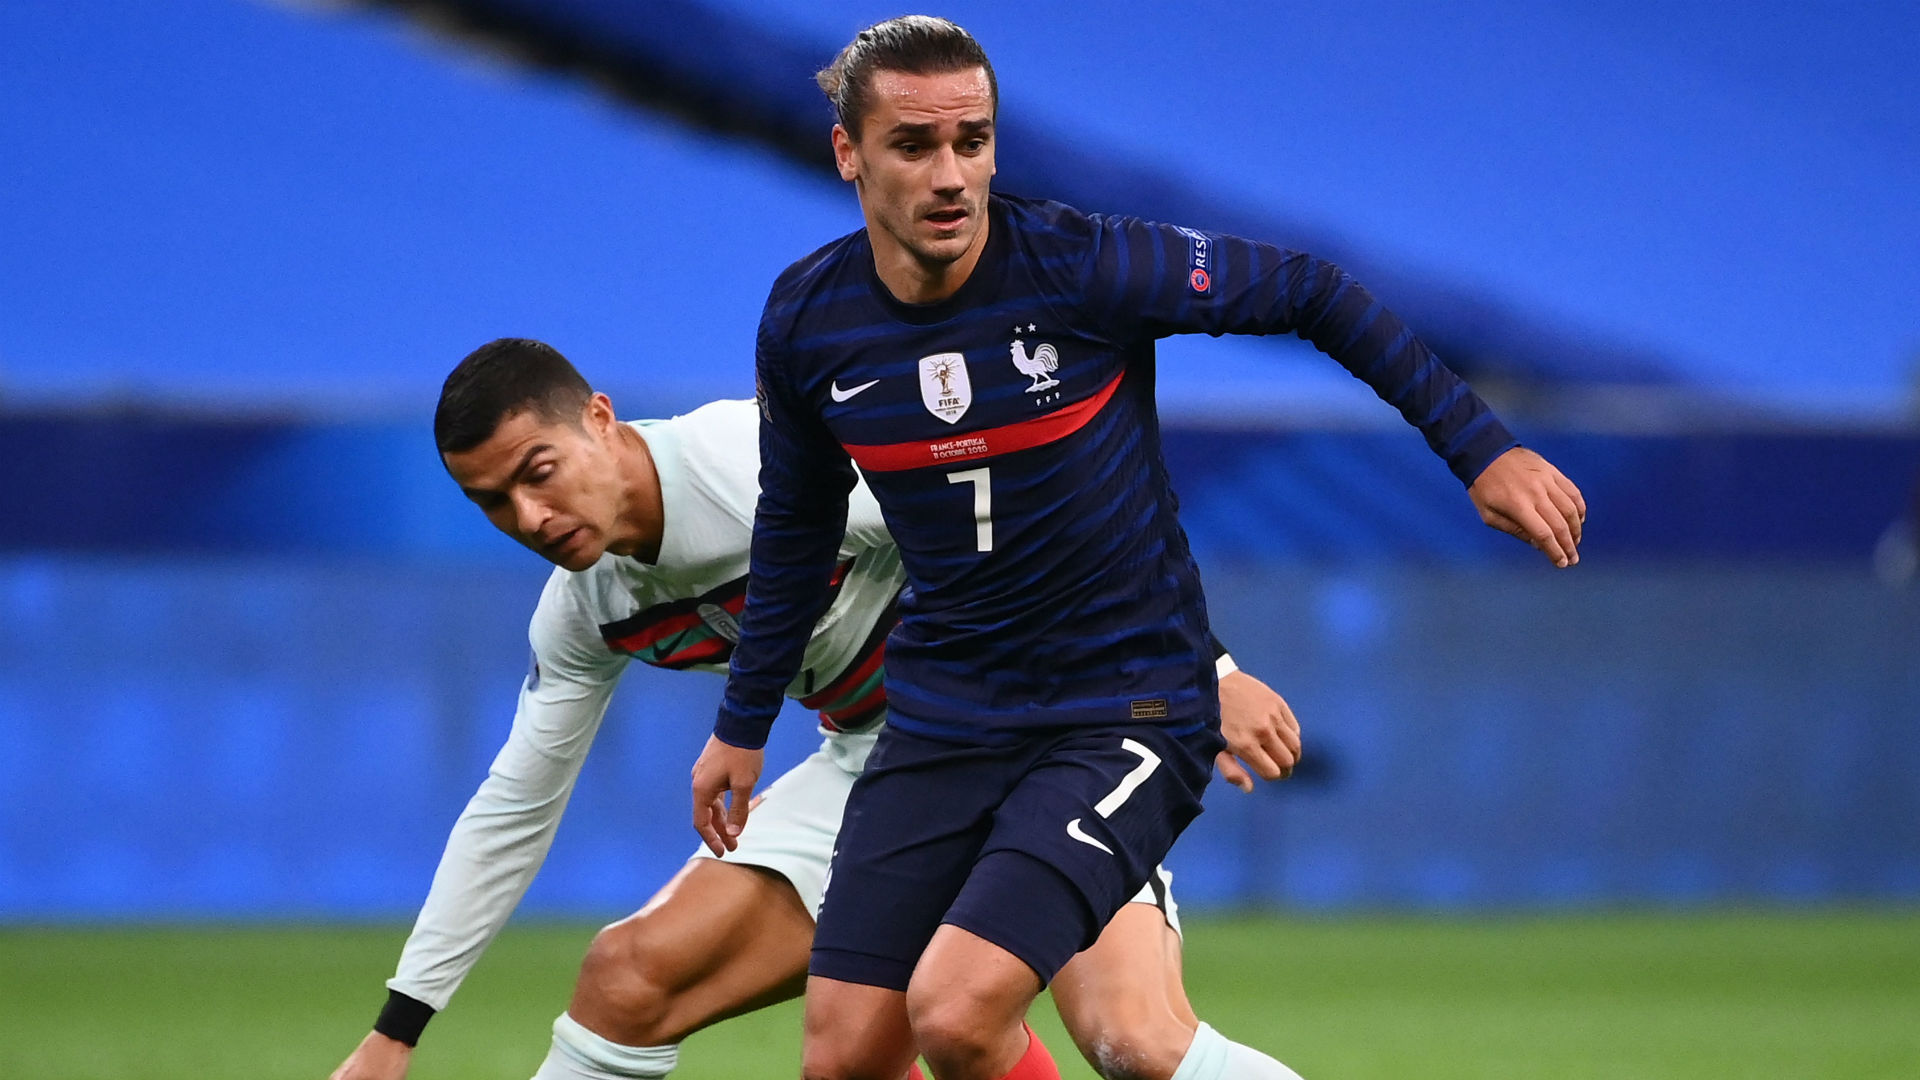 'Griezmann is not a number 10' - Deschamps slammed for playing France star out of position in Portugal stalemate